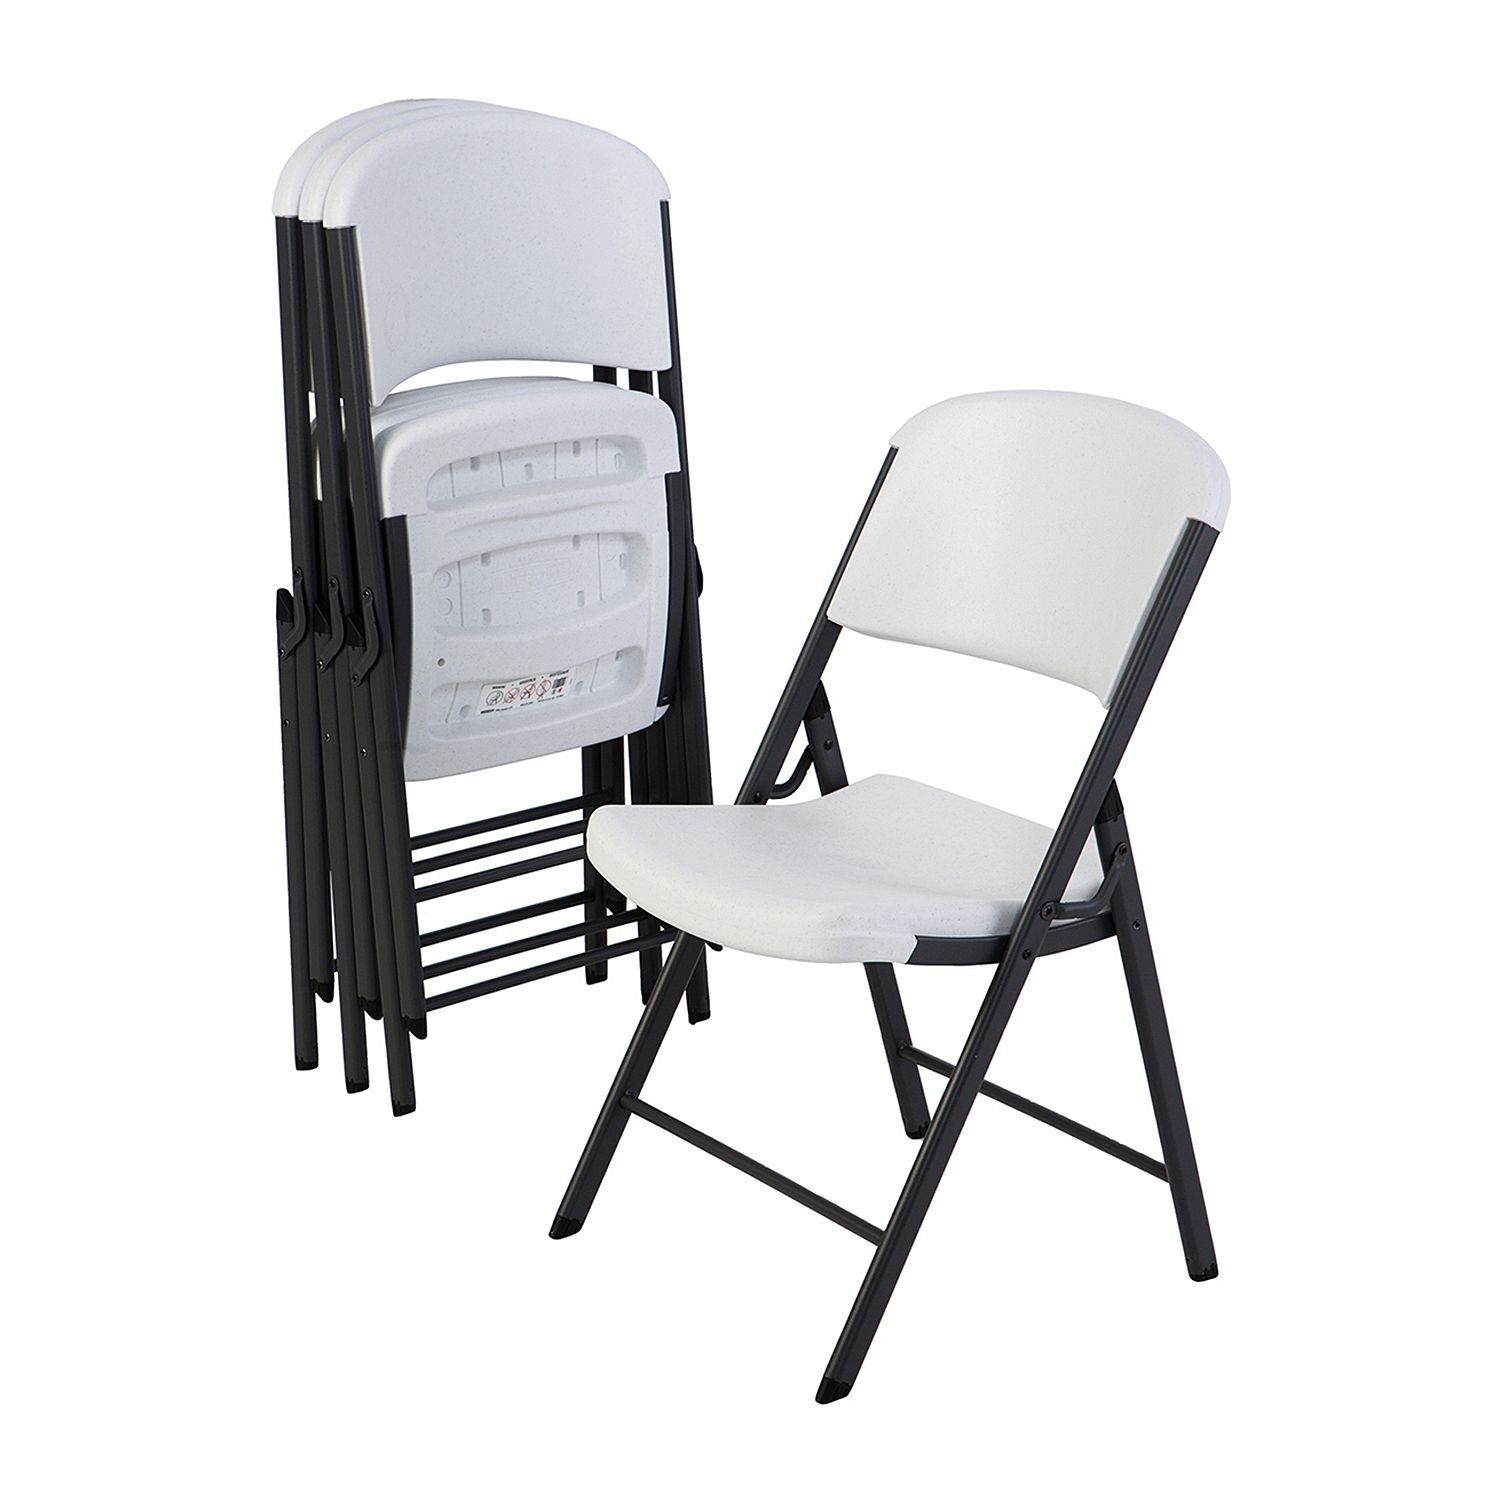 Lifetime Commercial Grade Contoured Folding Chair 4 Pack Choose